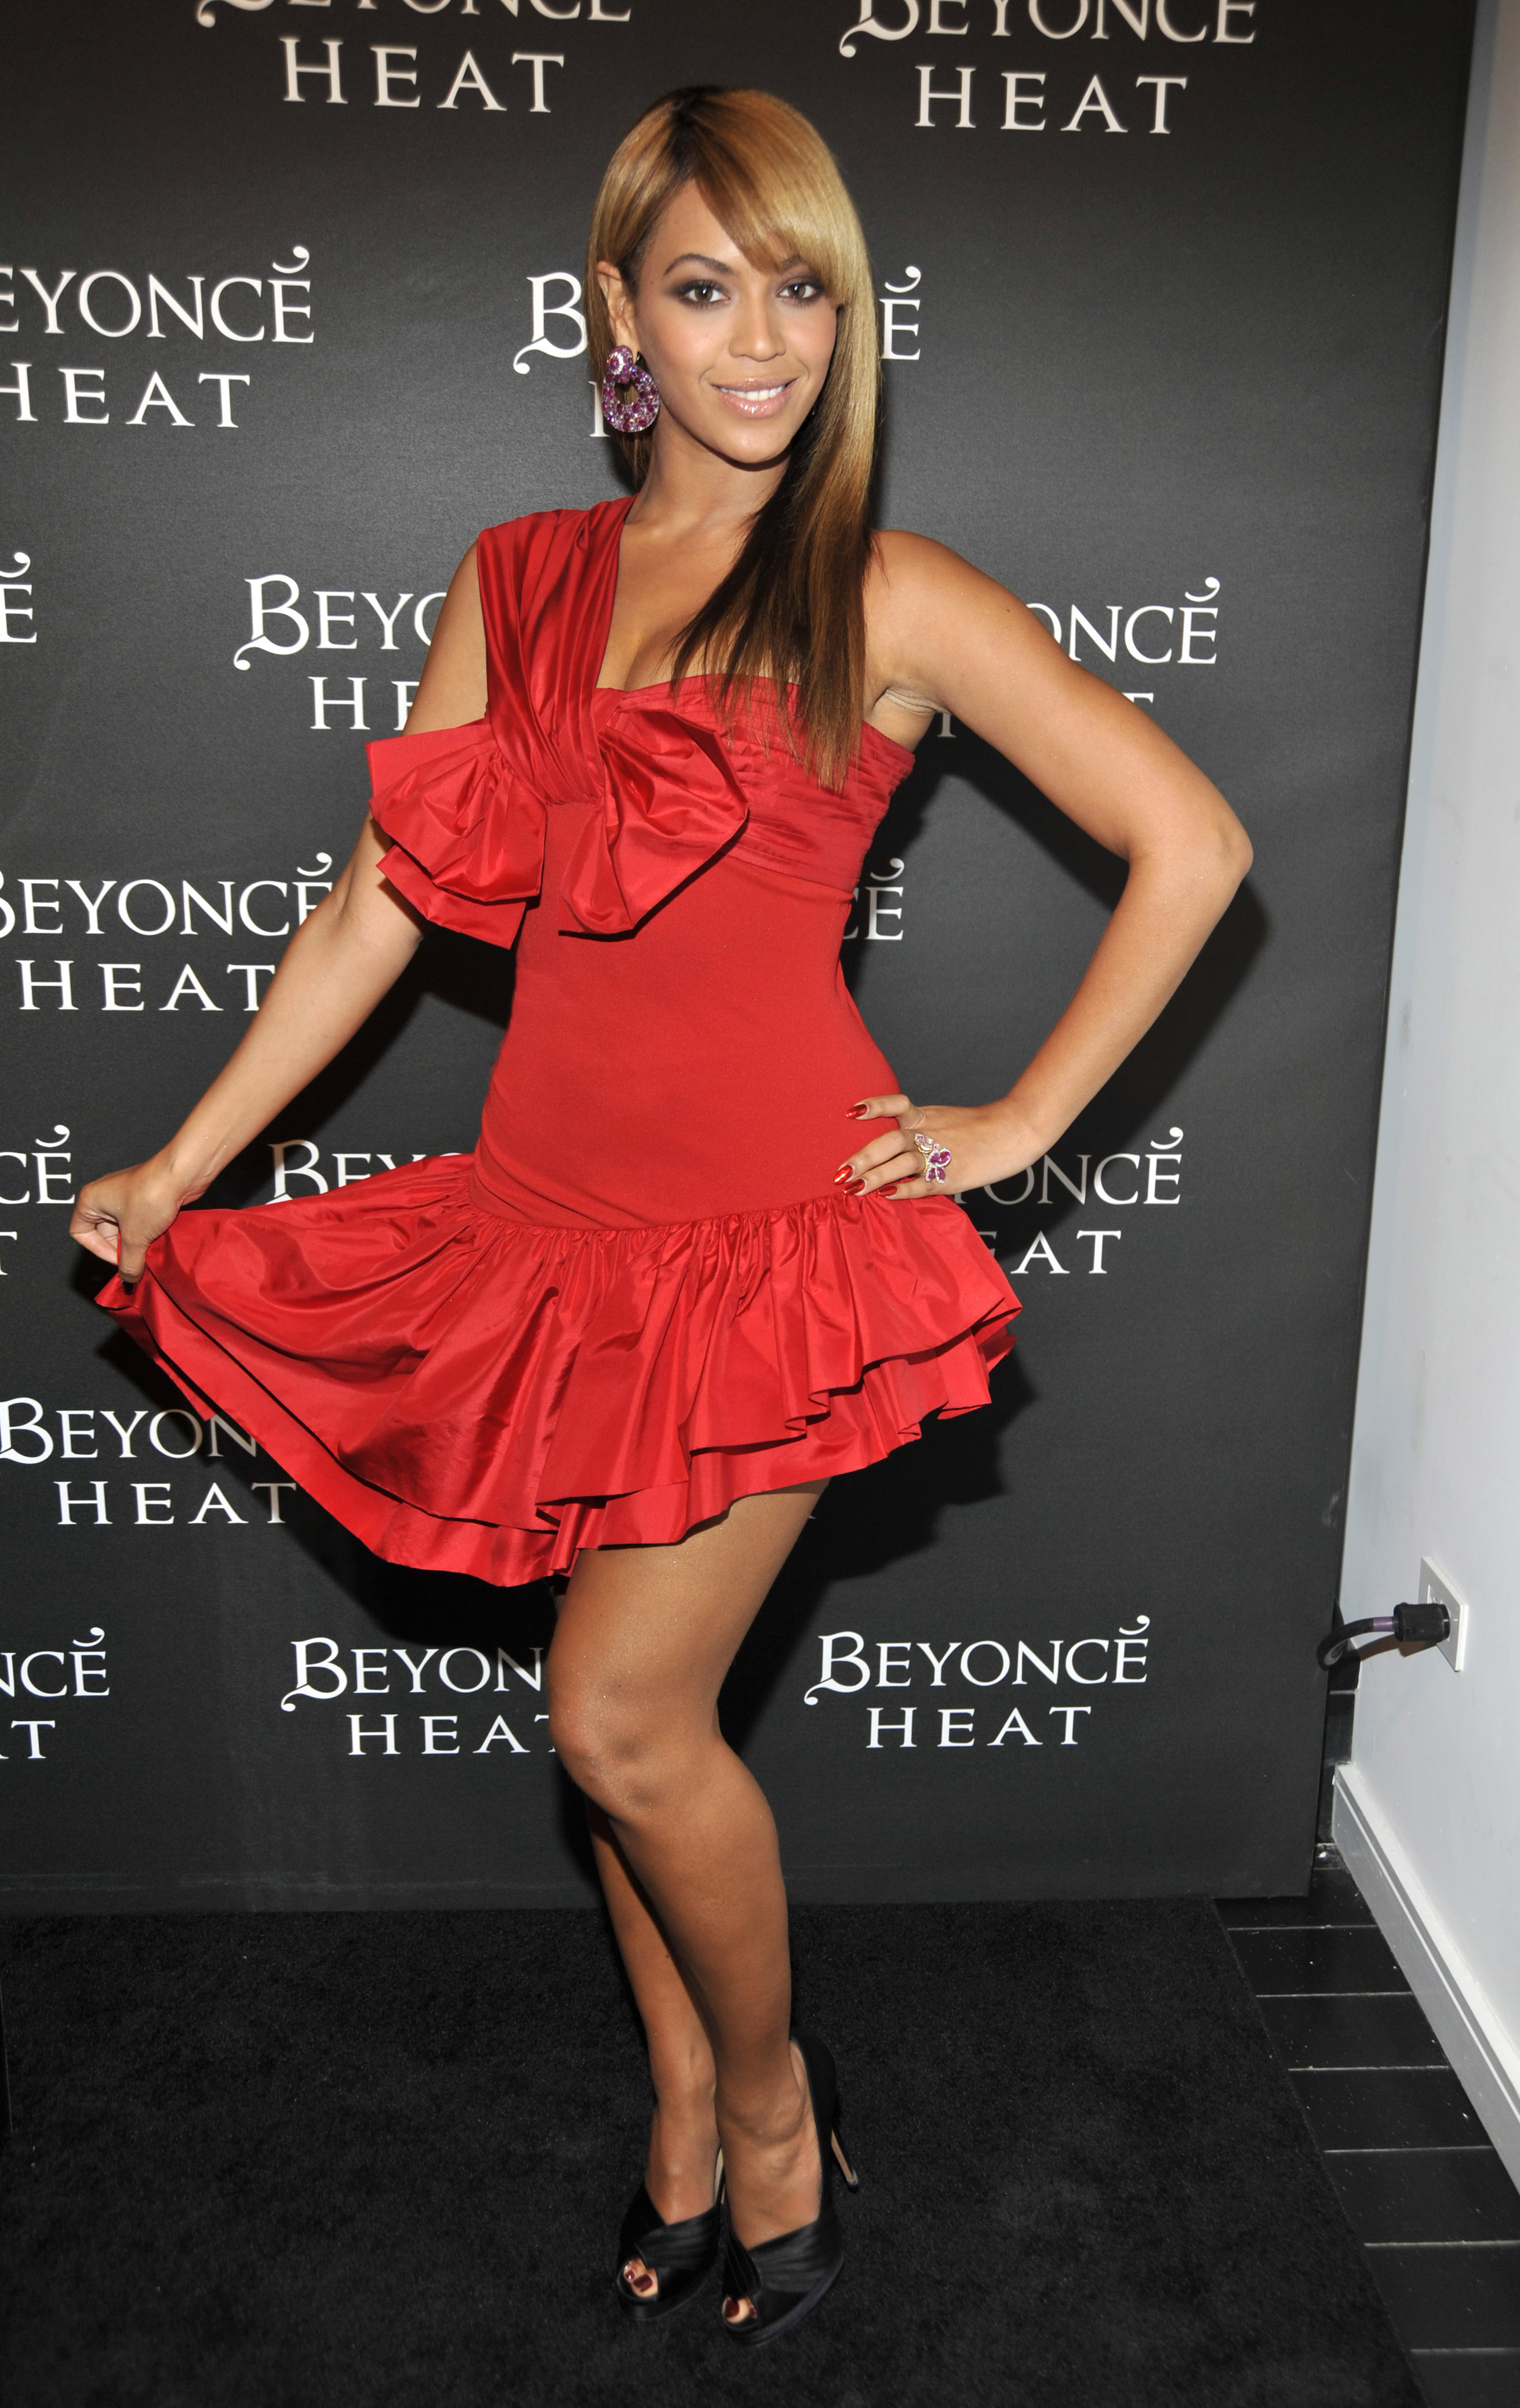 05212_beyonce-heat-launch-party-2_122_590lo.jpg